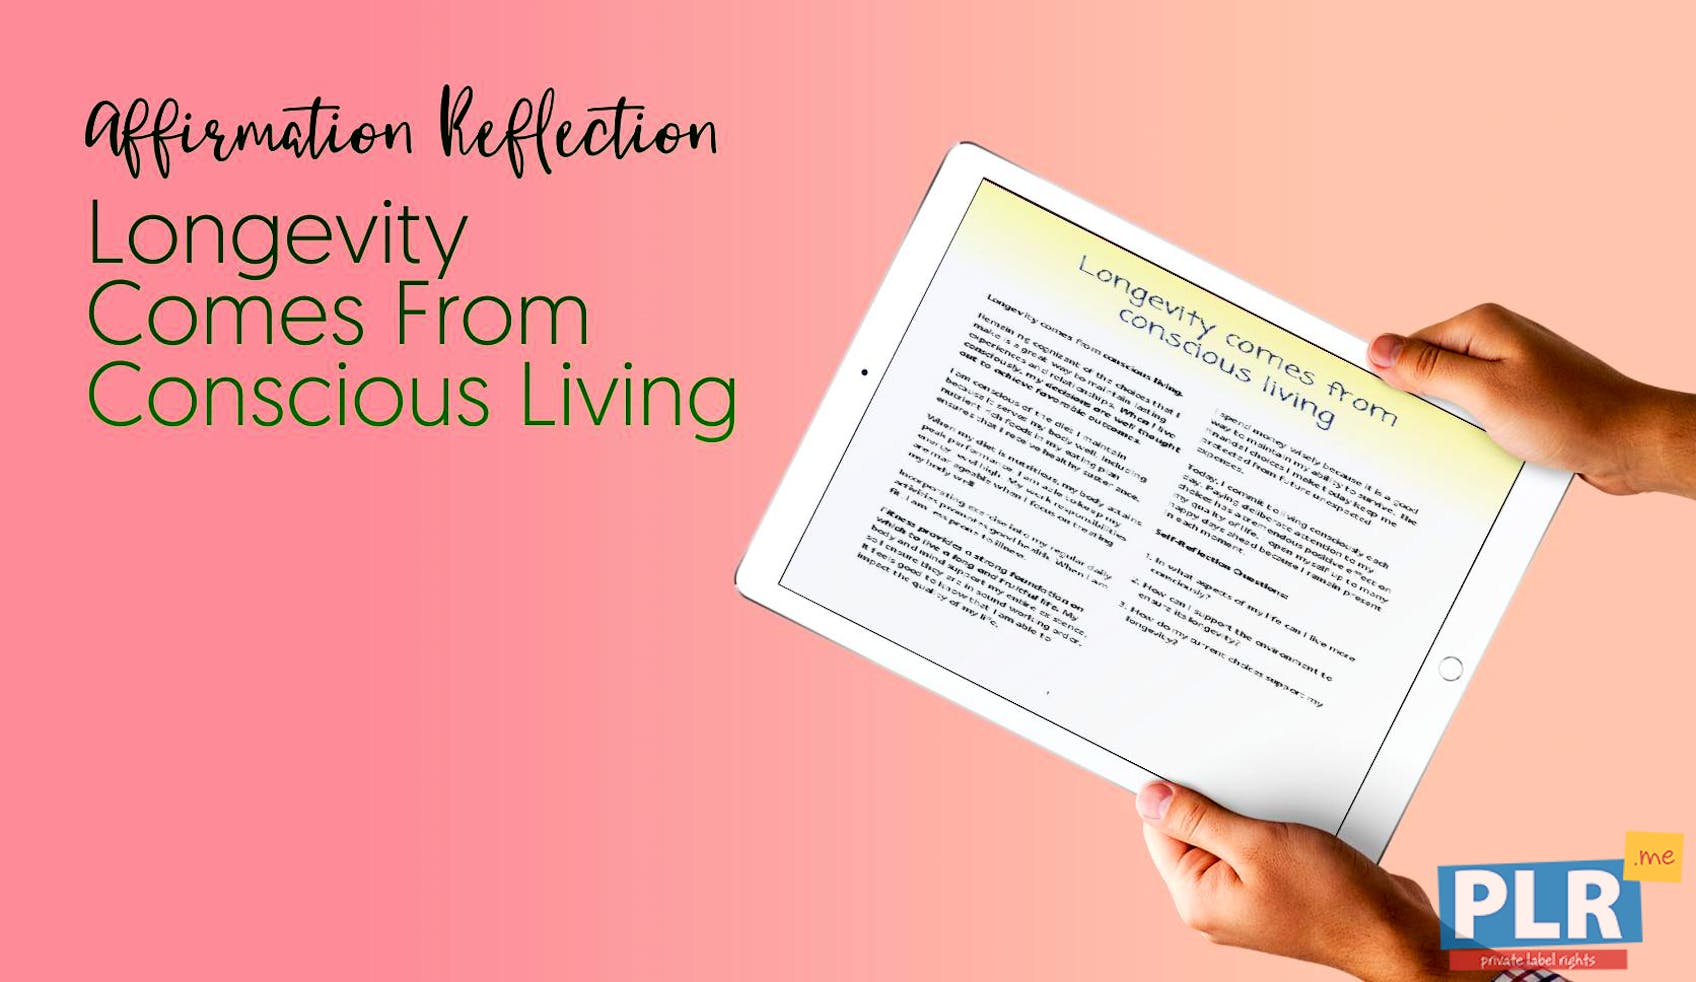 Longevity Comes From Conscious Living